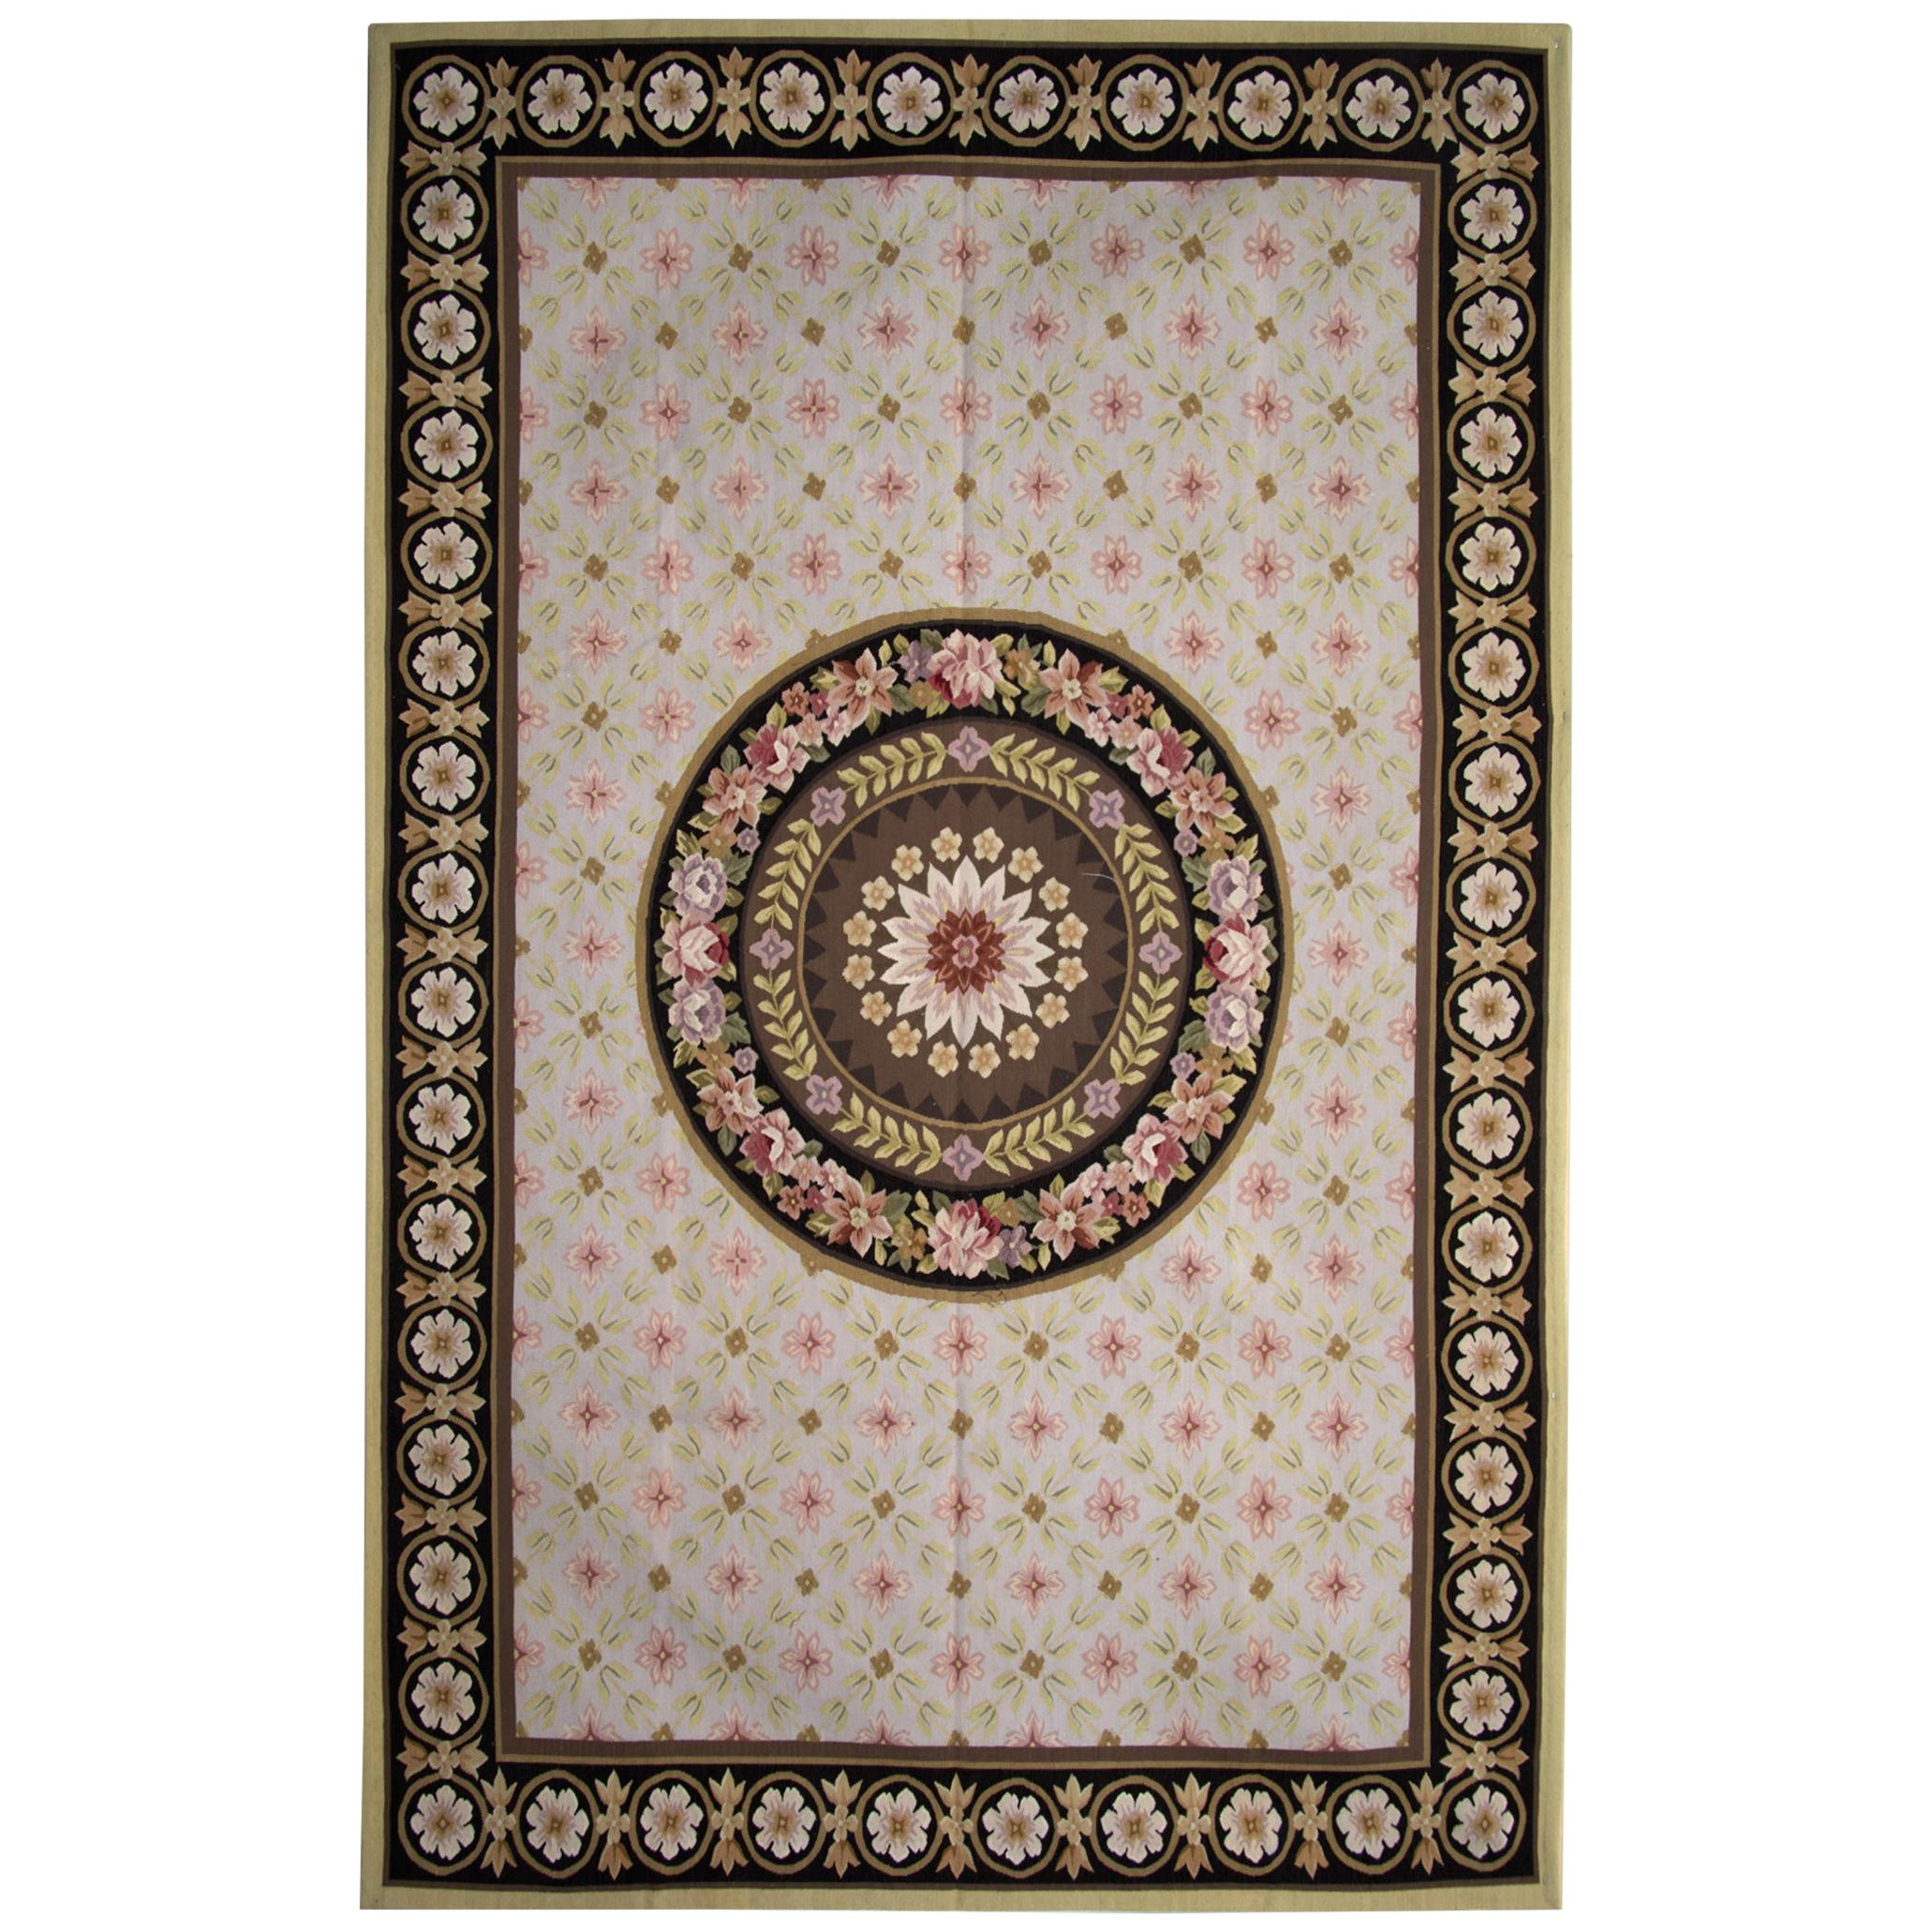 Aubusson Style Carpet Tapestry Area Rug Handwoven Wool Needlepoint